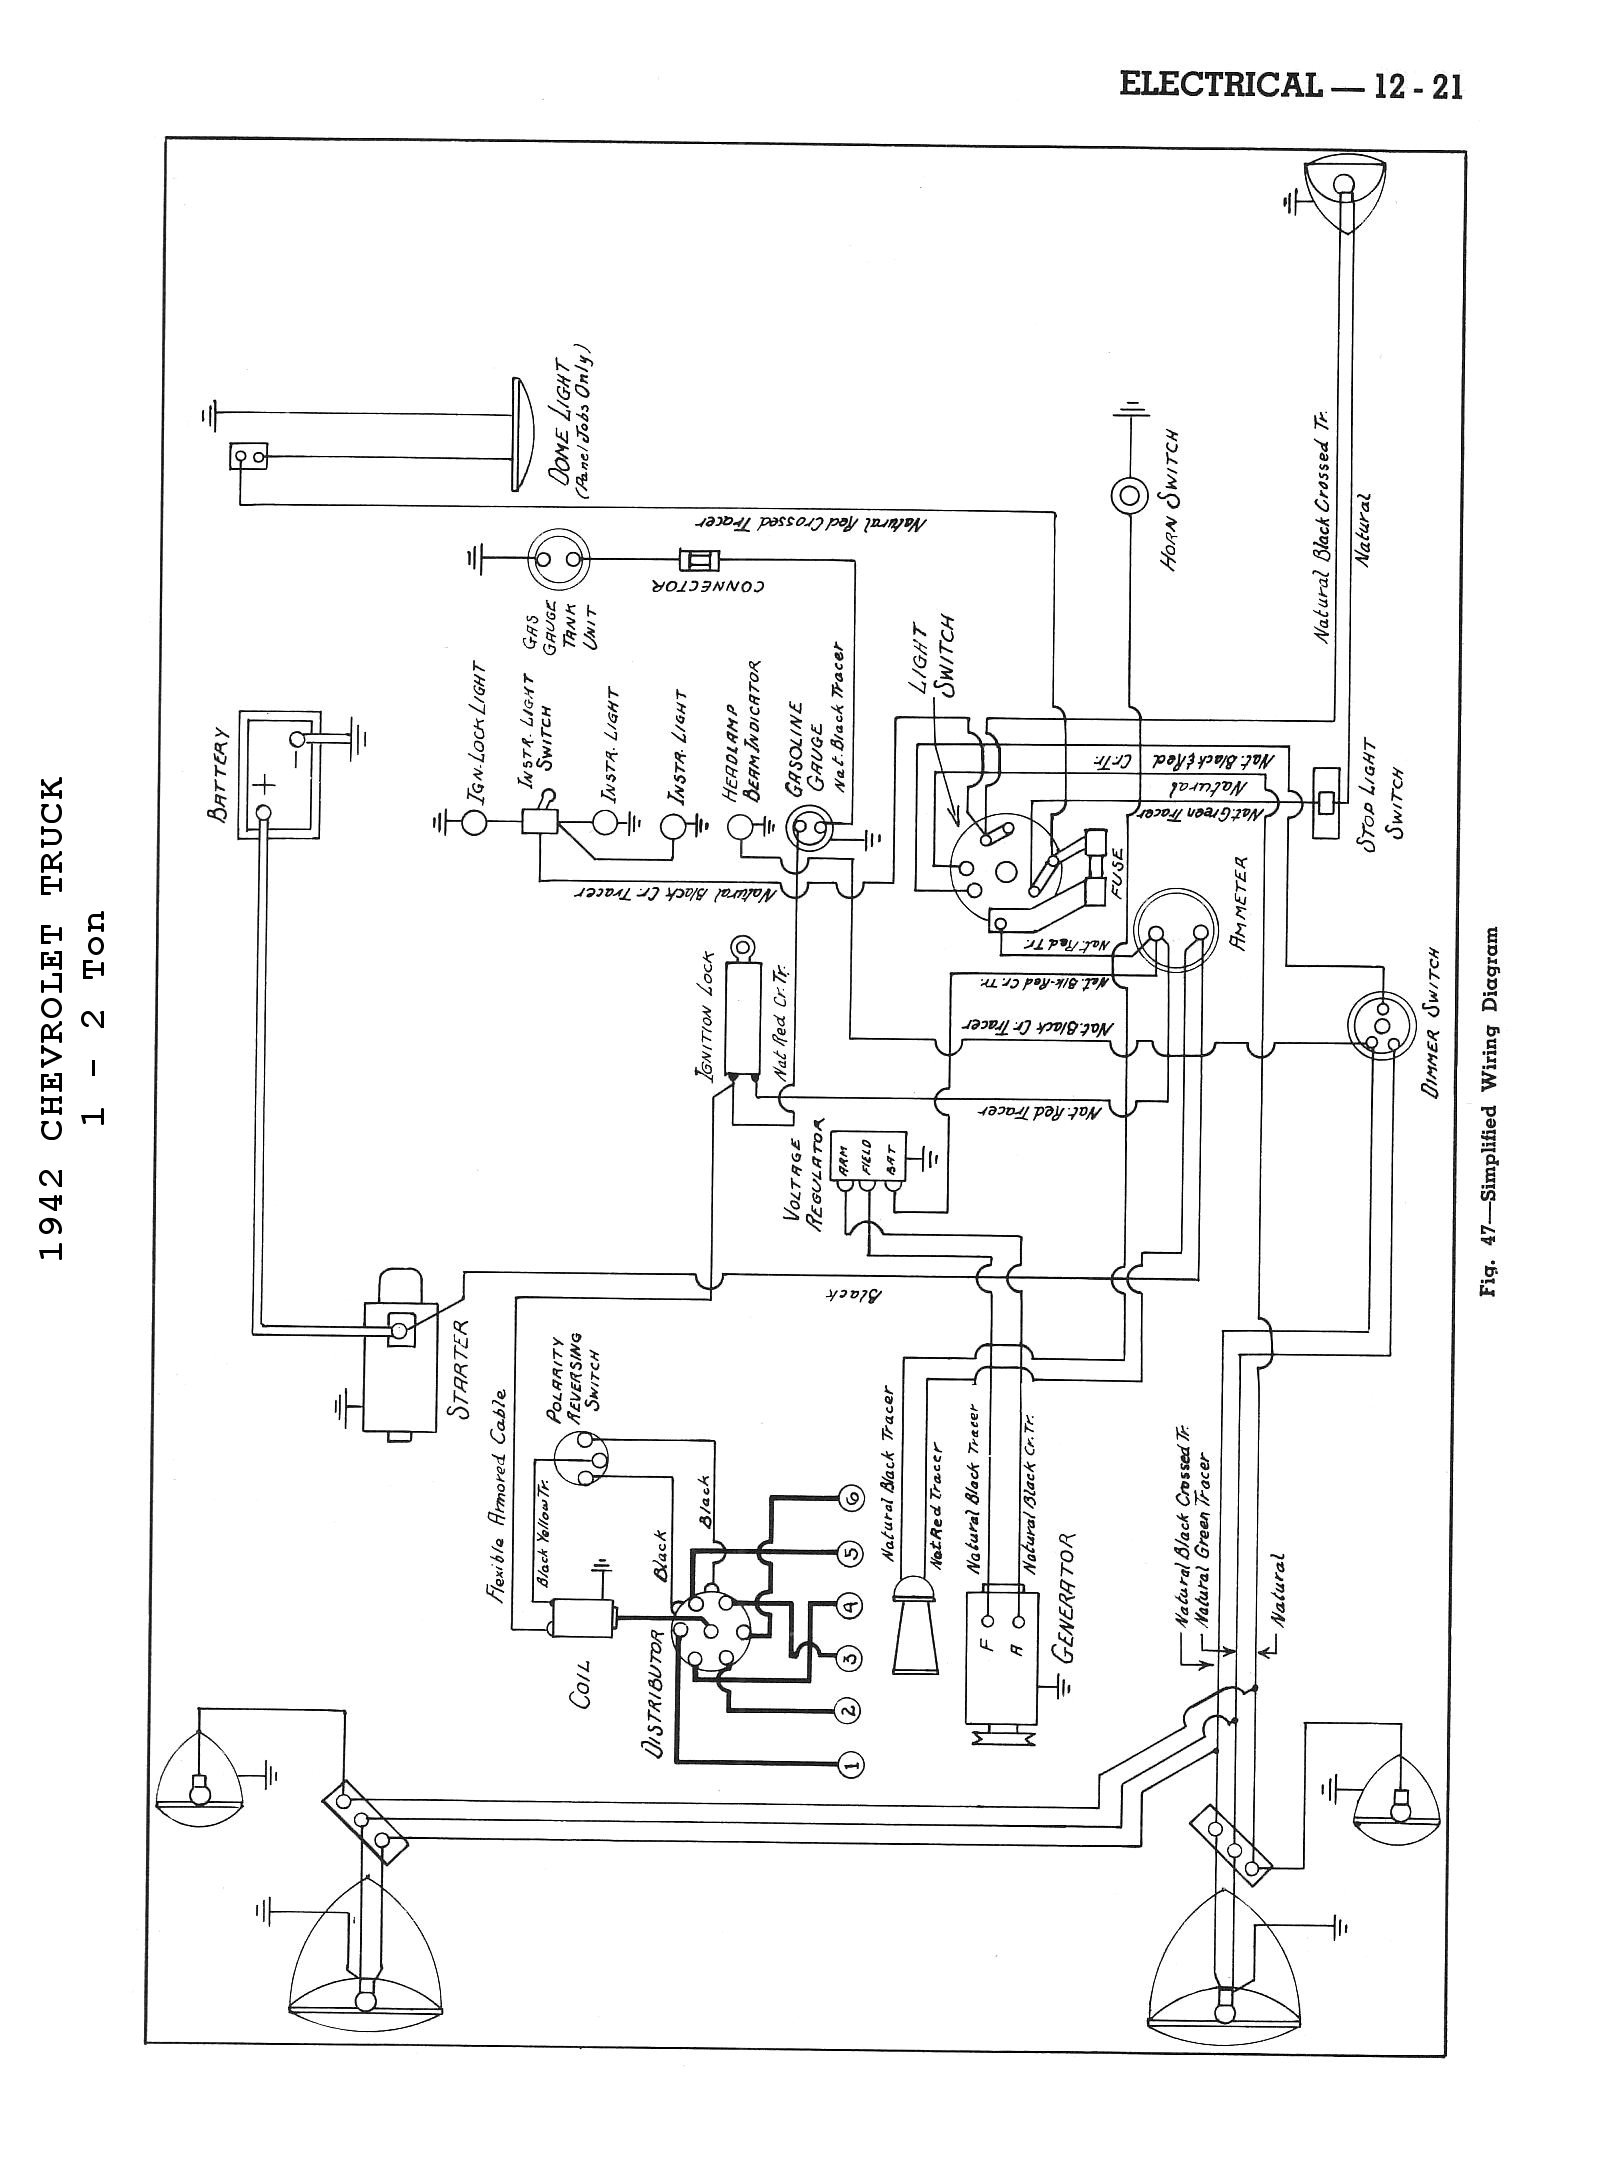 42cm4x2t1221 cm wiring diagram cm hoist wiring diagram \u2022 wiring diagrams j budget 2 ton chain hoist wiring diagram at crackthecode.co